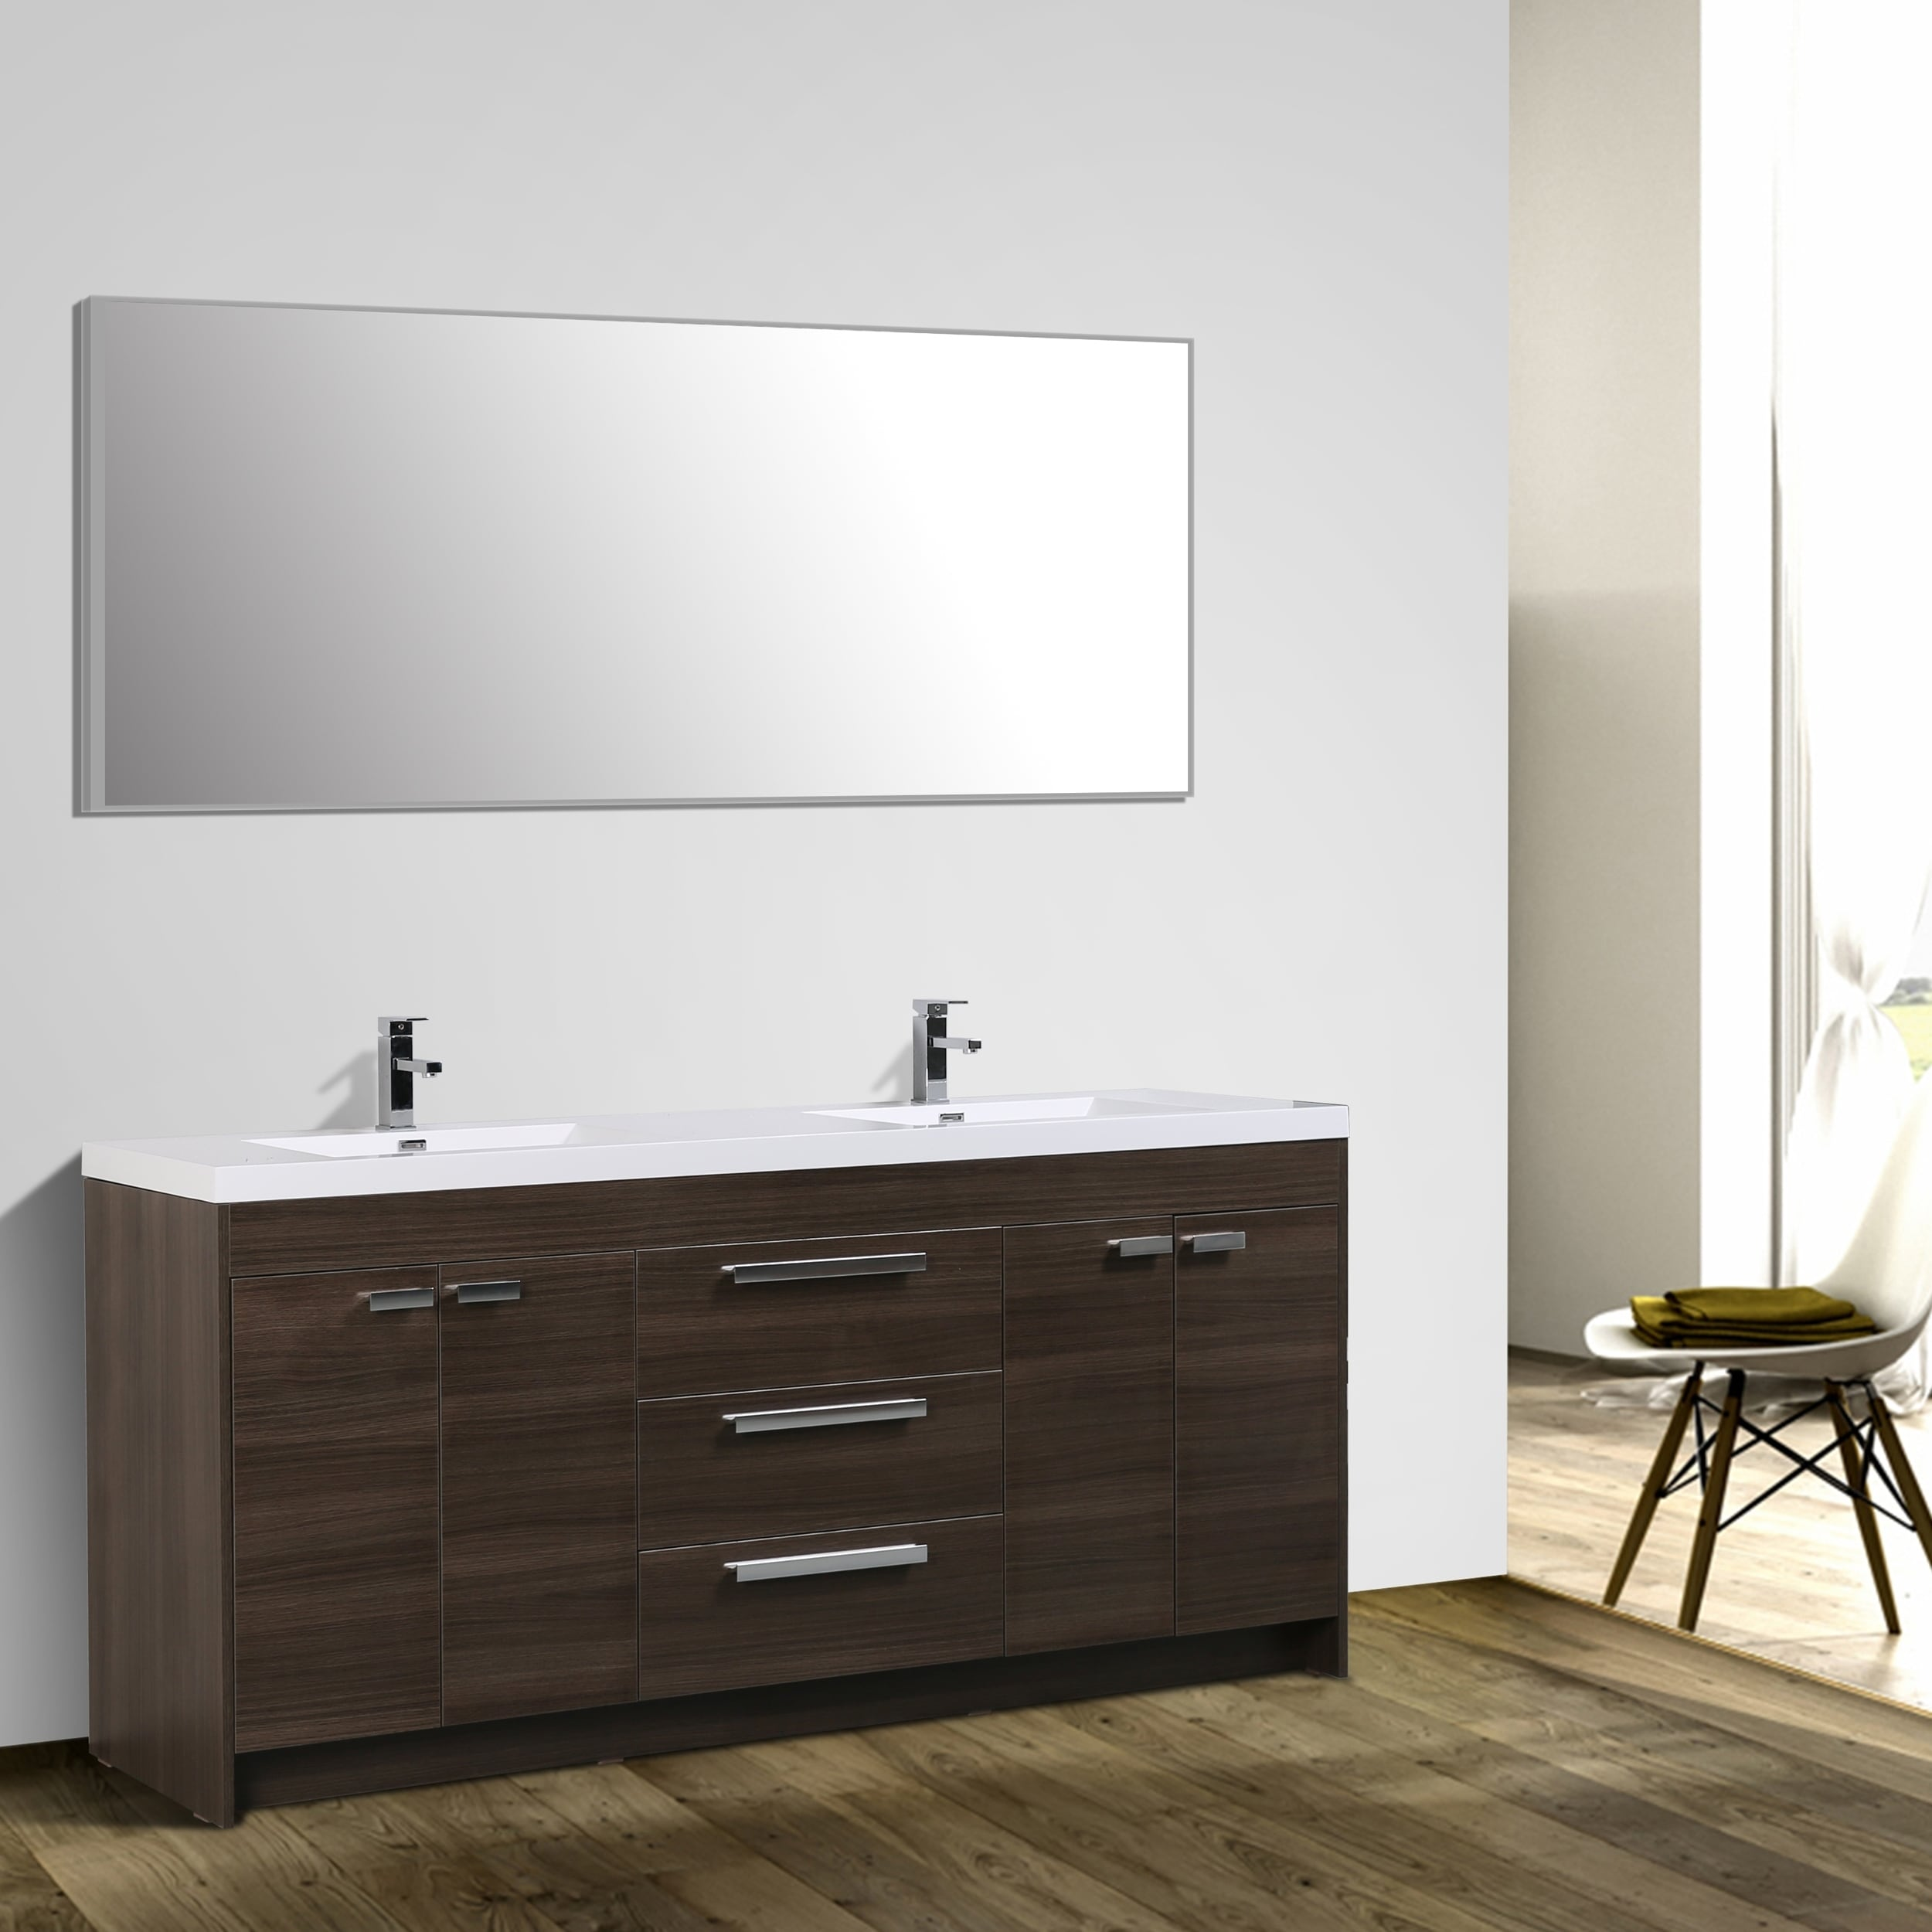 Shop Eviva Lugano Grey Oak Bathroom Vanity Free Shipping Today - 84 bathroom vanities and cabinets